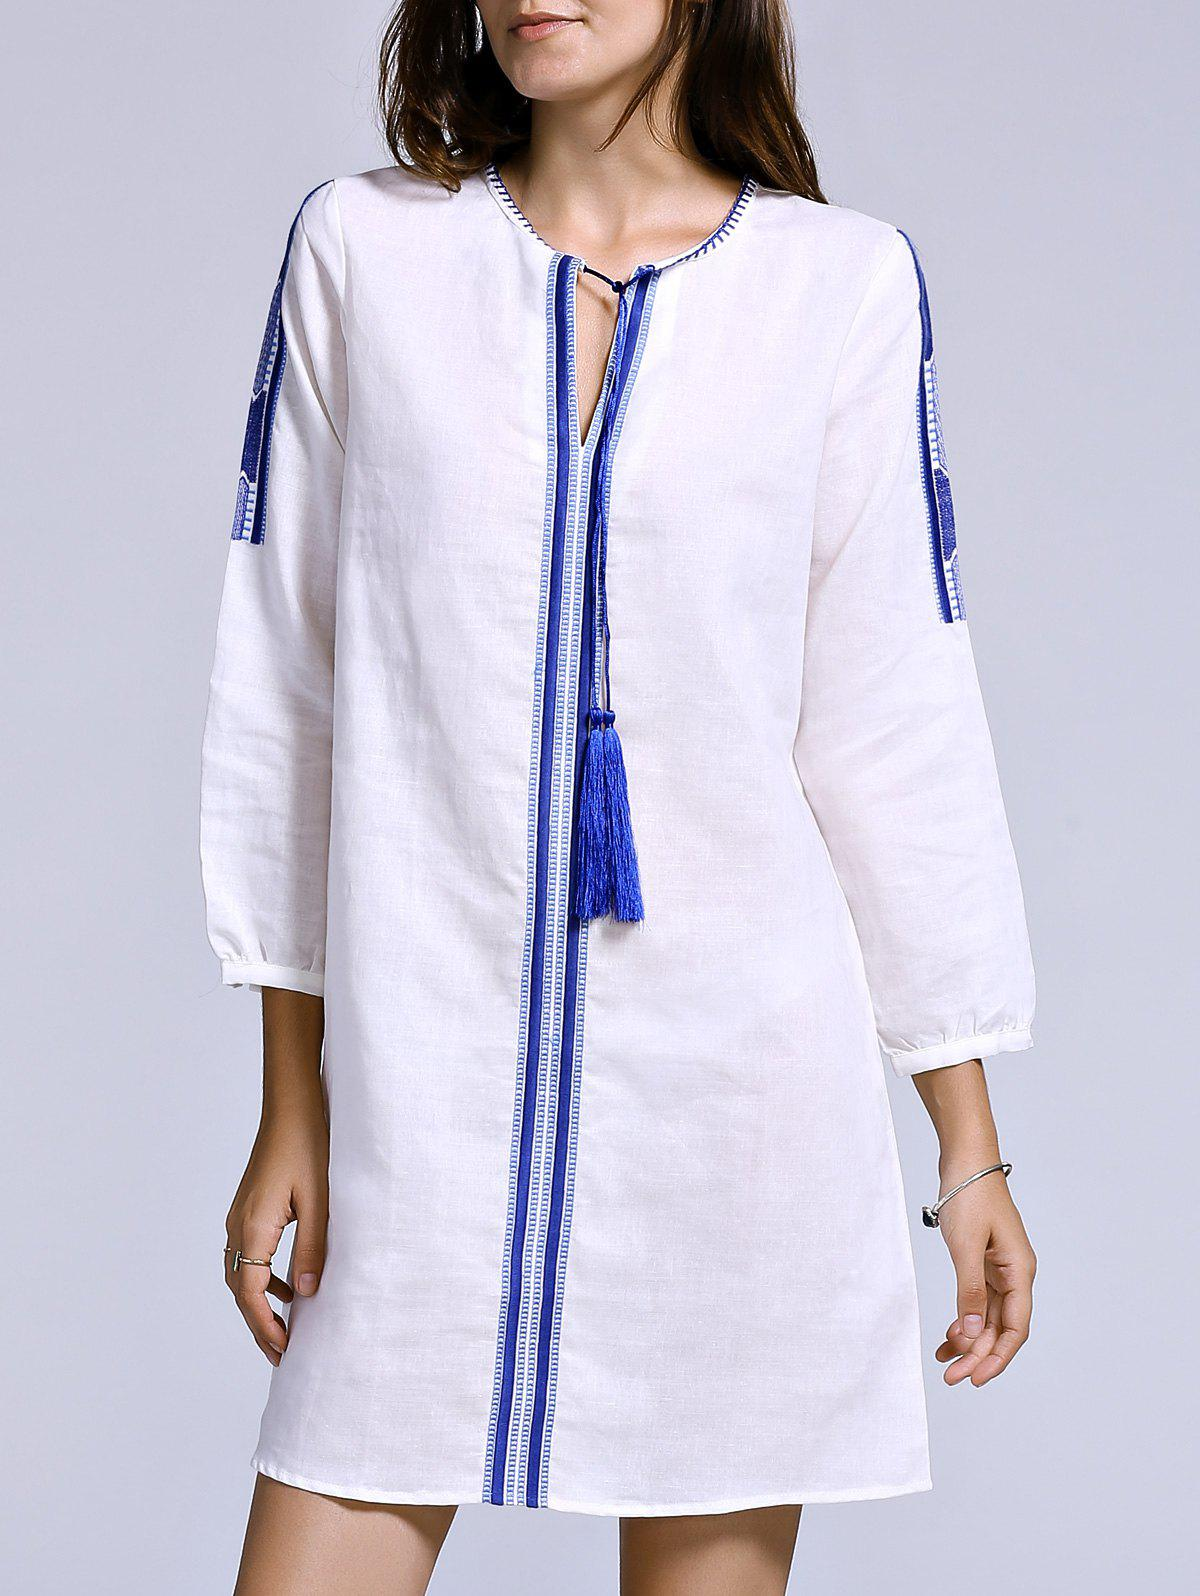 Round Neck Tassel Embellished Ethnic Style Womens Embroidered DressWomen<br><br><br>Size: L<br>Color: WHITE